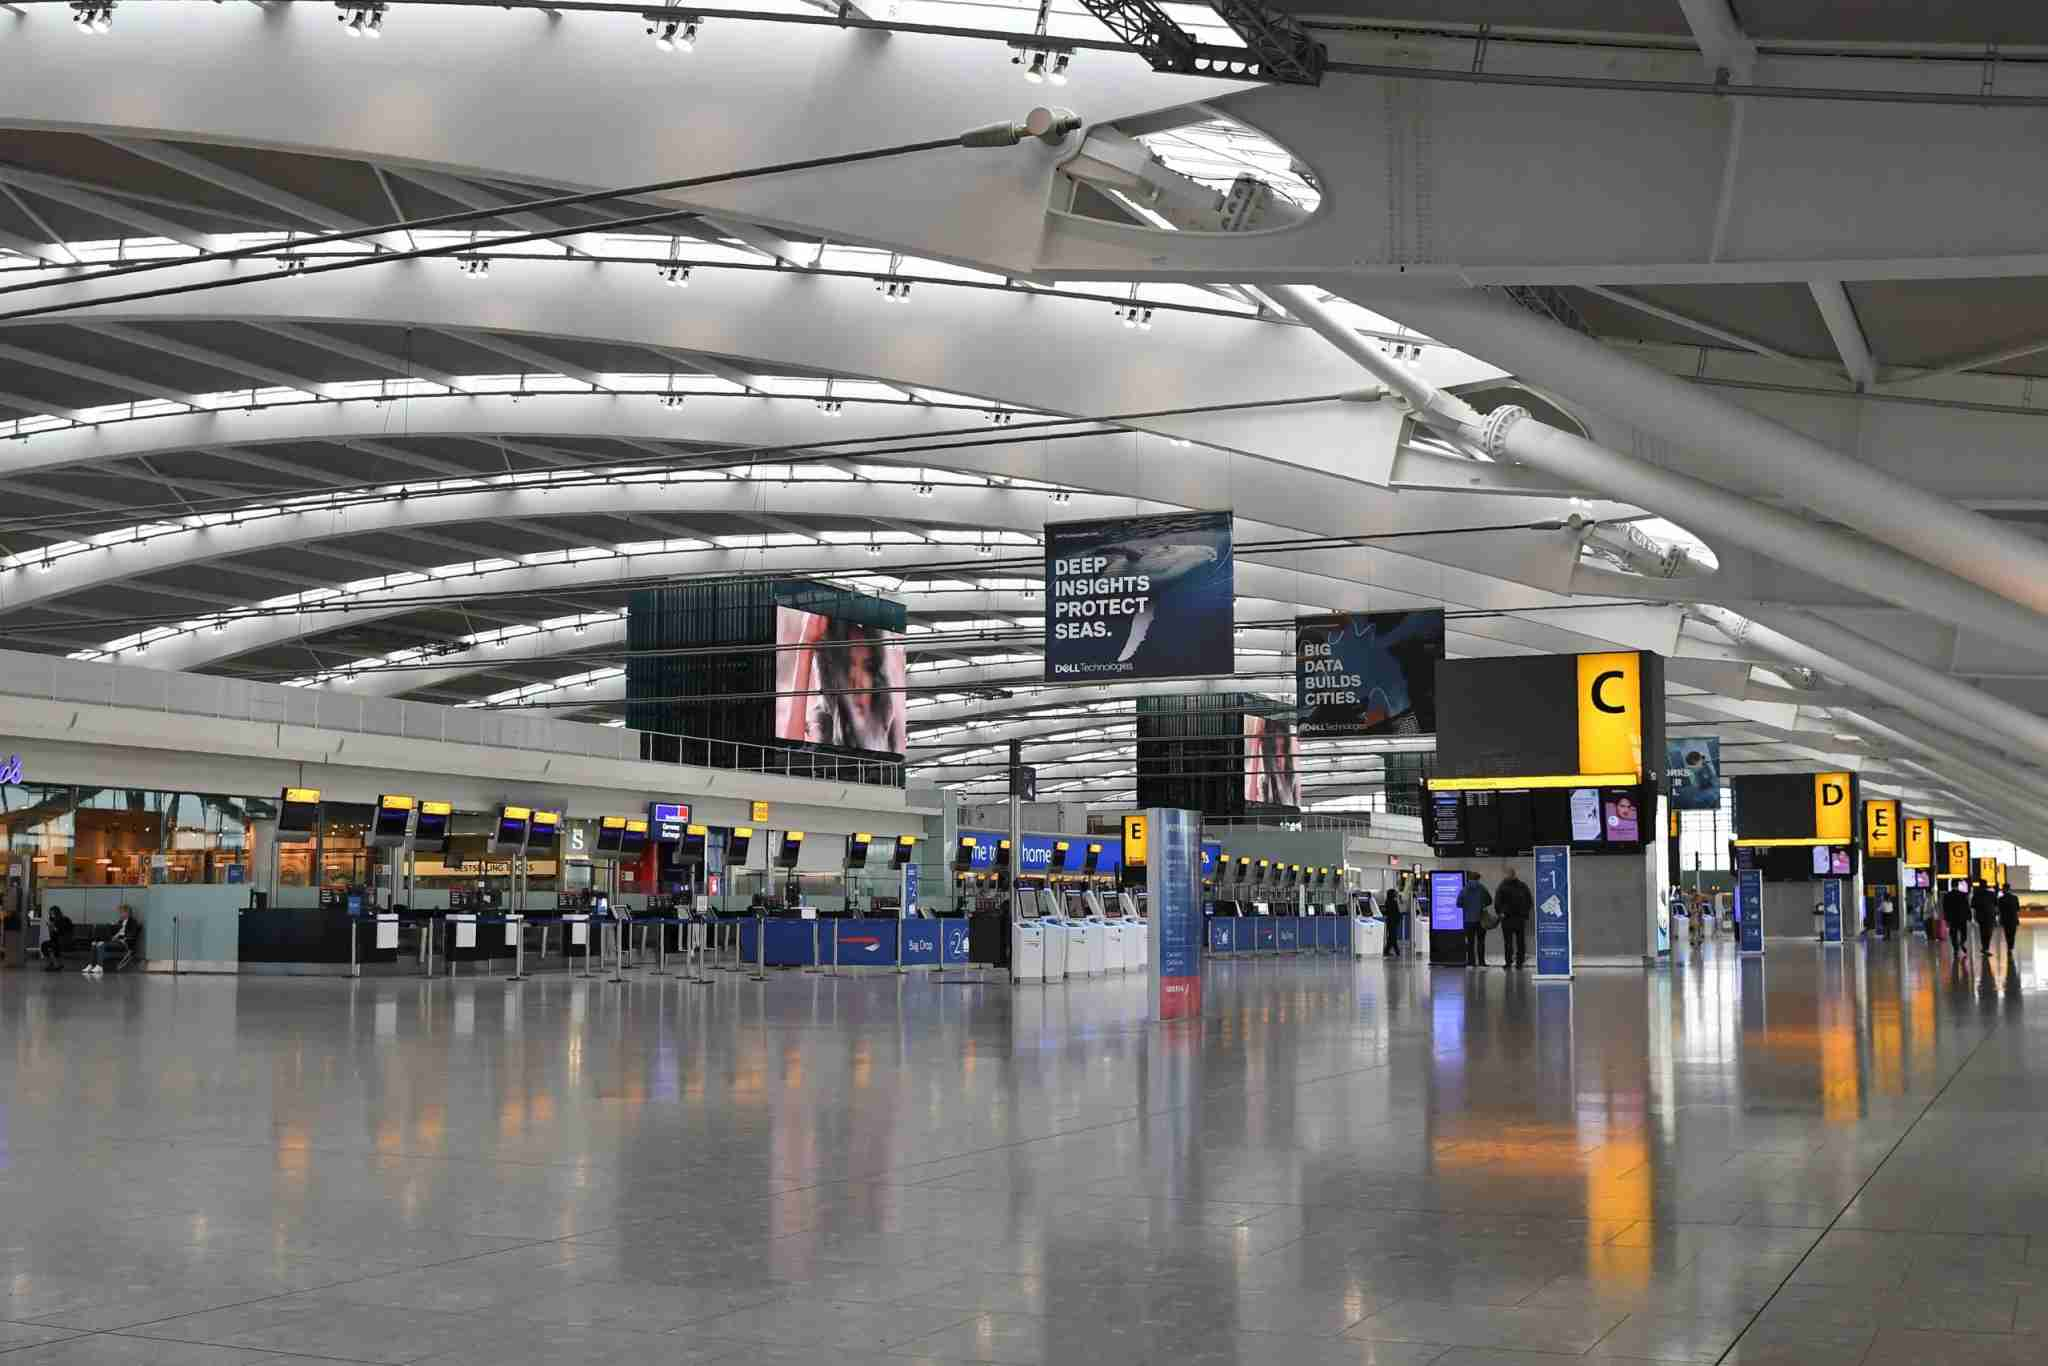 A few passengers walk around the near-deserted departure area at Heathrow airport Terminal 5 in west London on September 9, 2019, as the airline